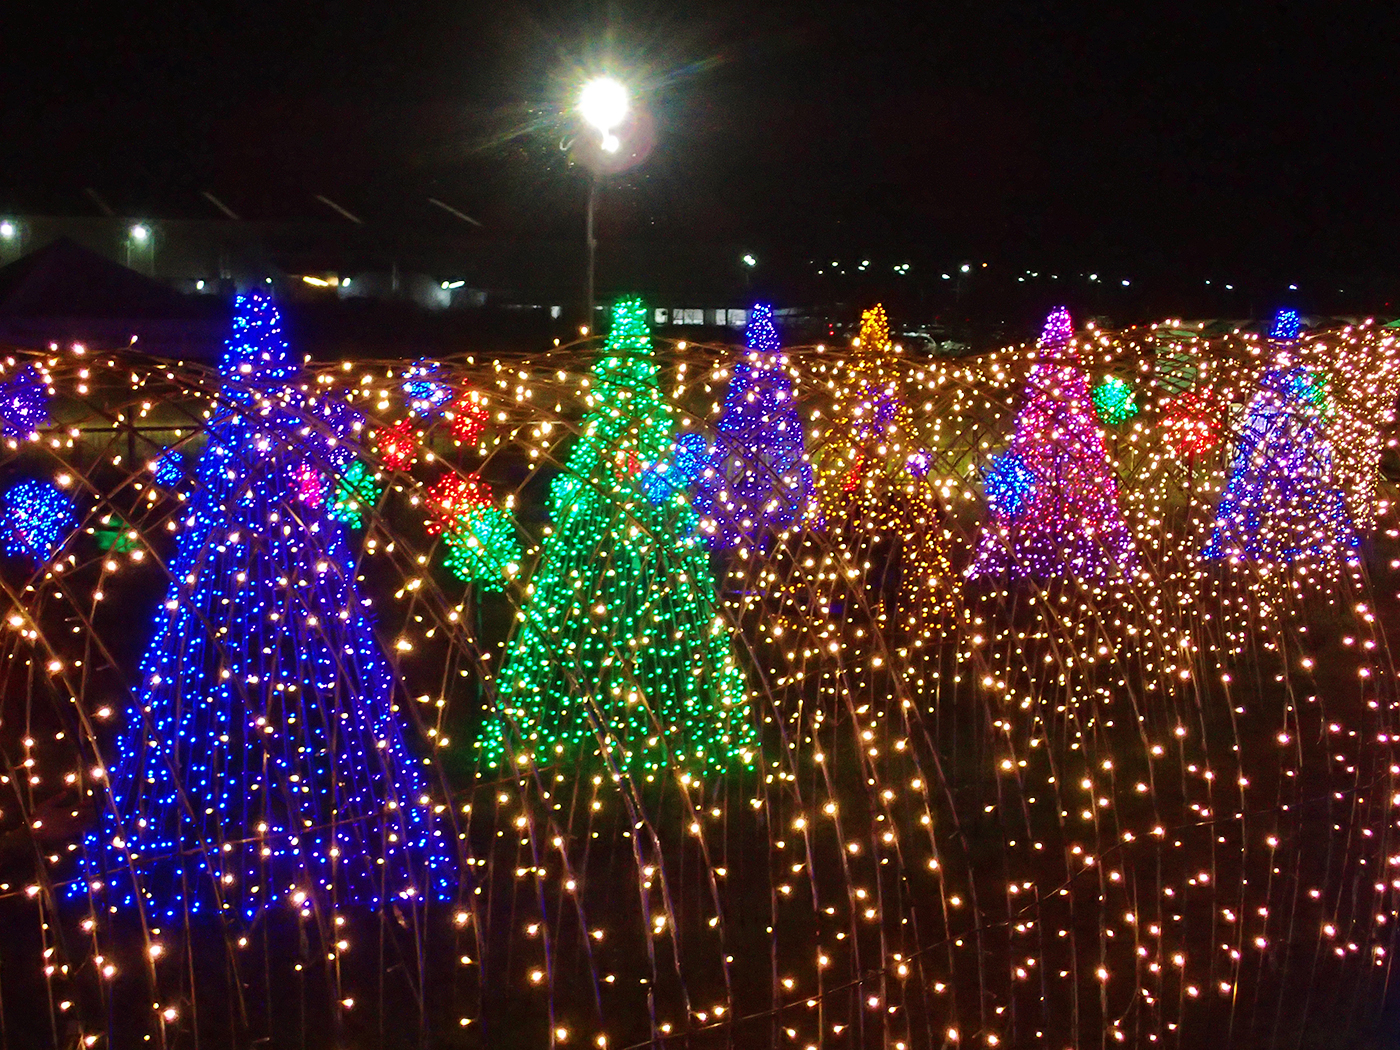 Look Magical Field Of Lights In Nuvali Is The Perfect Christmas Treat